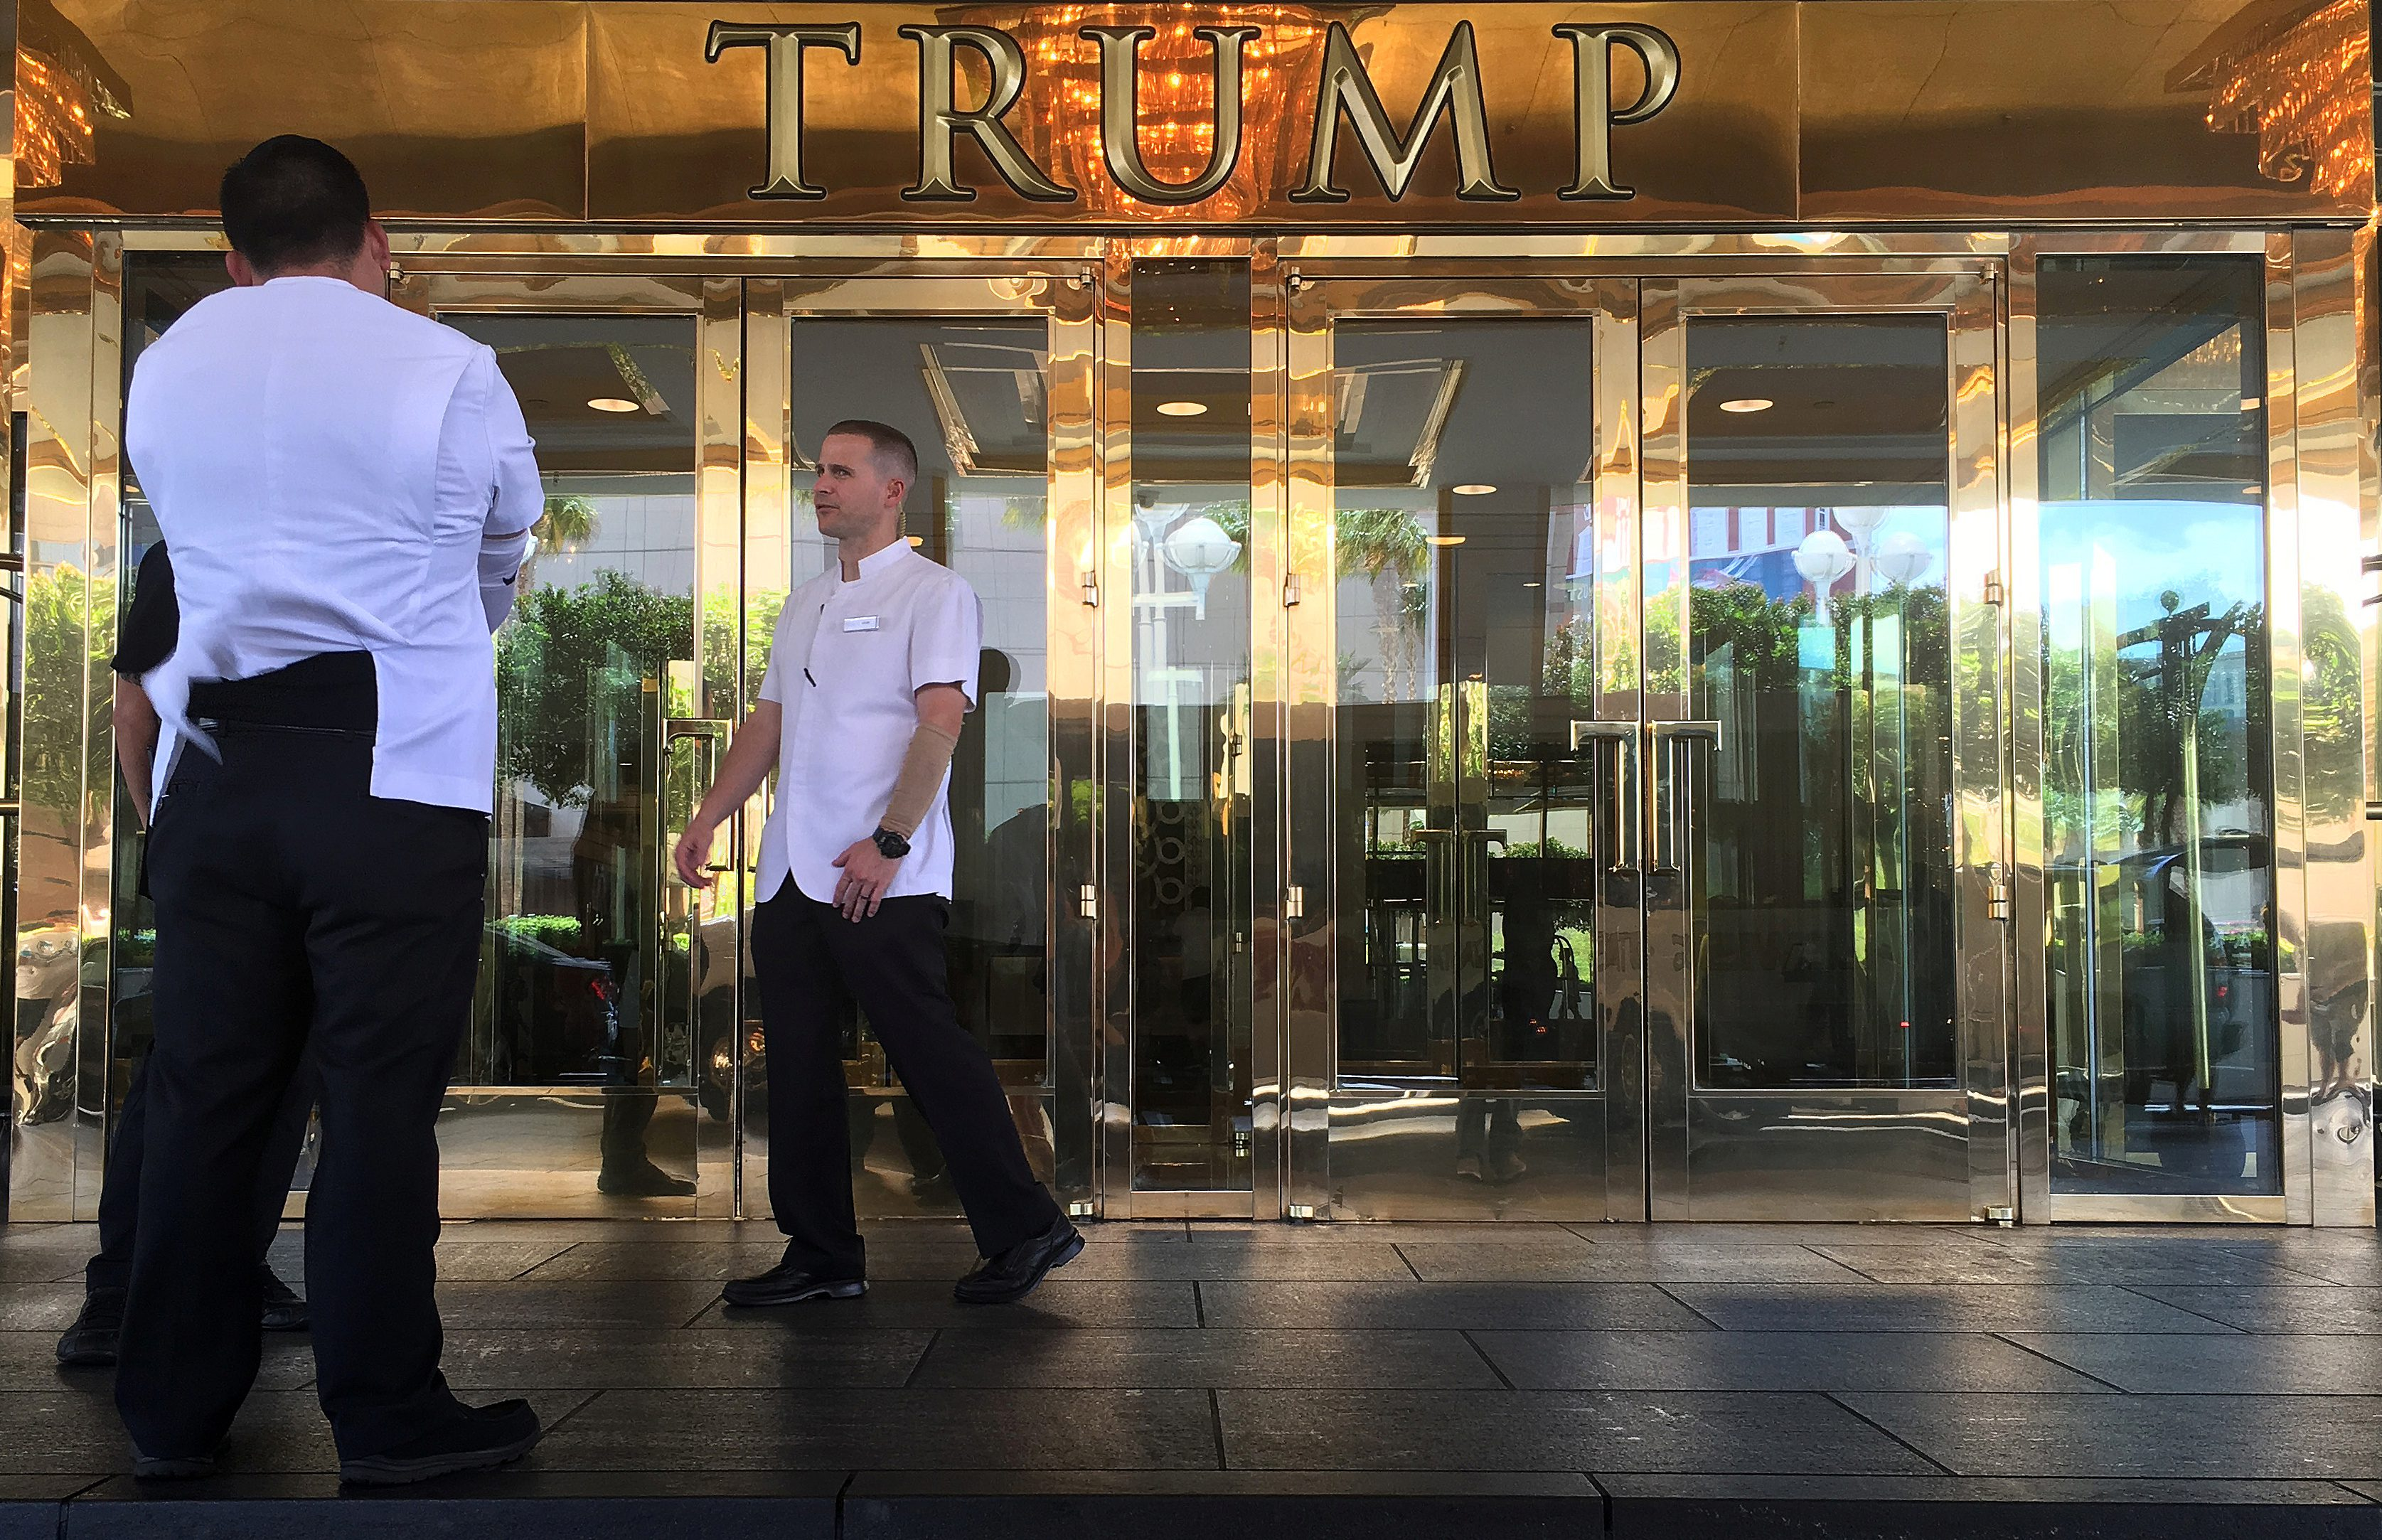 Workers stand outside the Trump Hotel  in Las Vegas